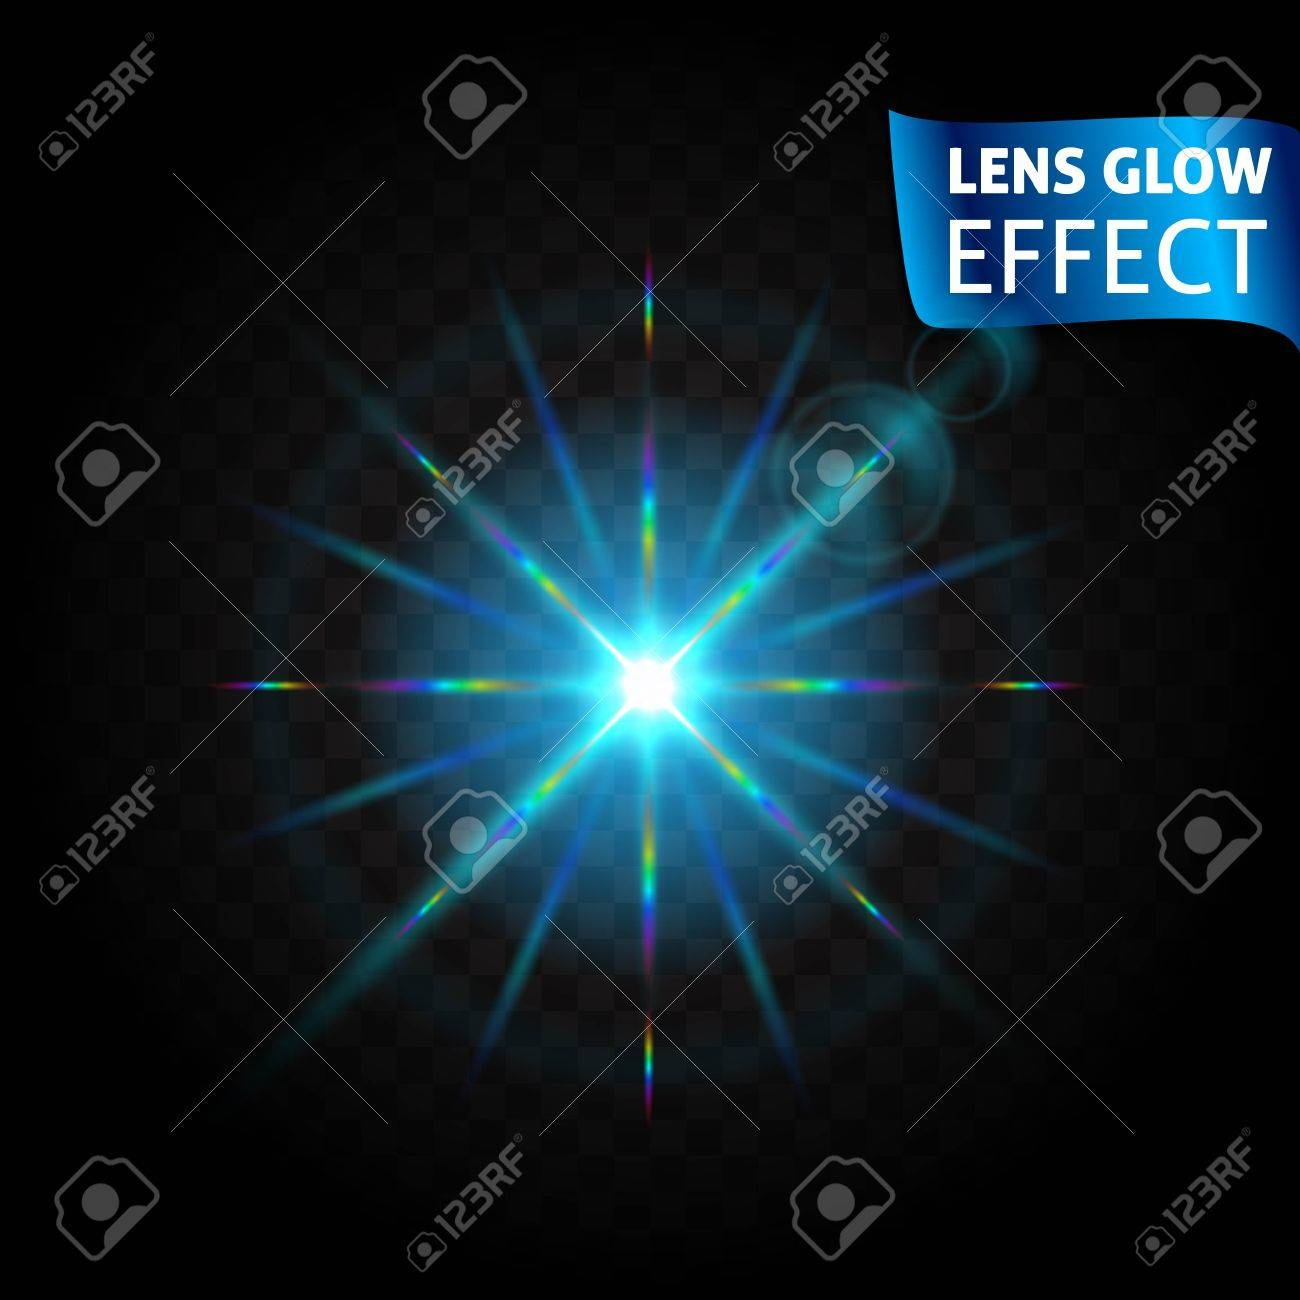 lens glow effect glowing light reflections realistic bright